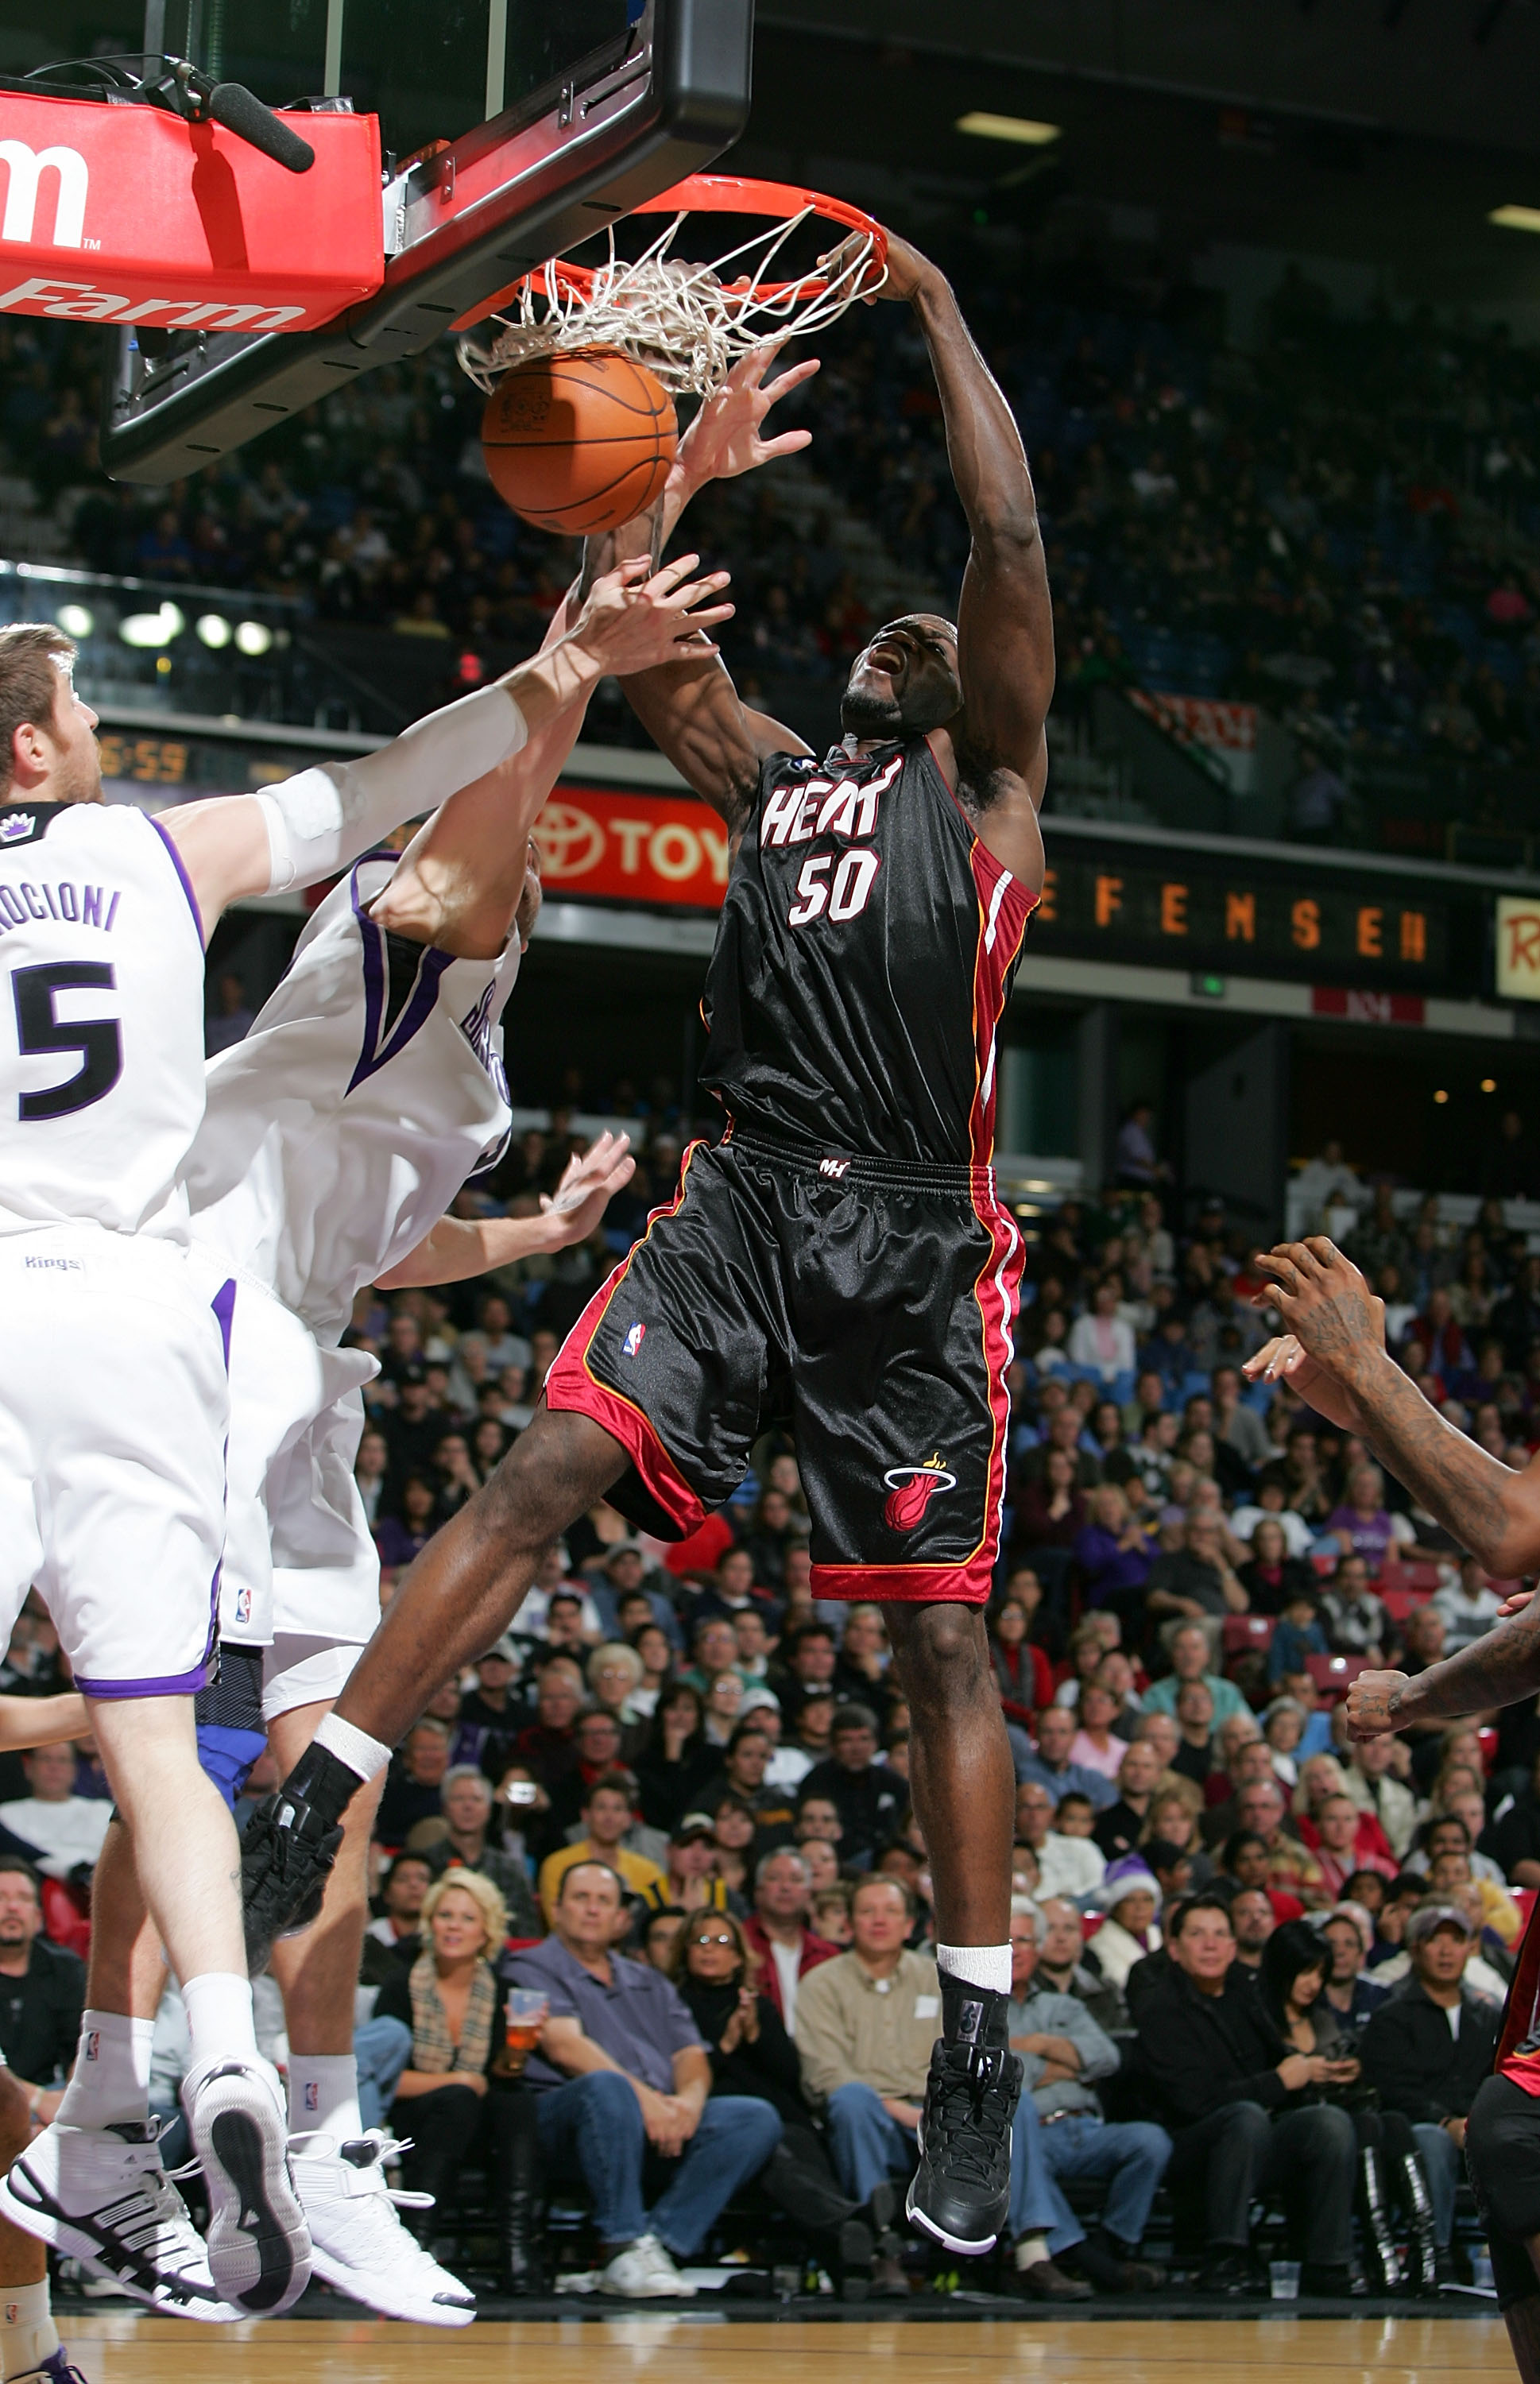 SACRAMENTO, CA - DECEMBER 06:  Joel Anthony #50 of the Miami Heat dunks the ball during their game against the Sacramento Kings at ARCO Arena on December 6, 2009 in Sacramento, California.  NOTE TO USER: User expressly acknowledges and agrees that, by dow